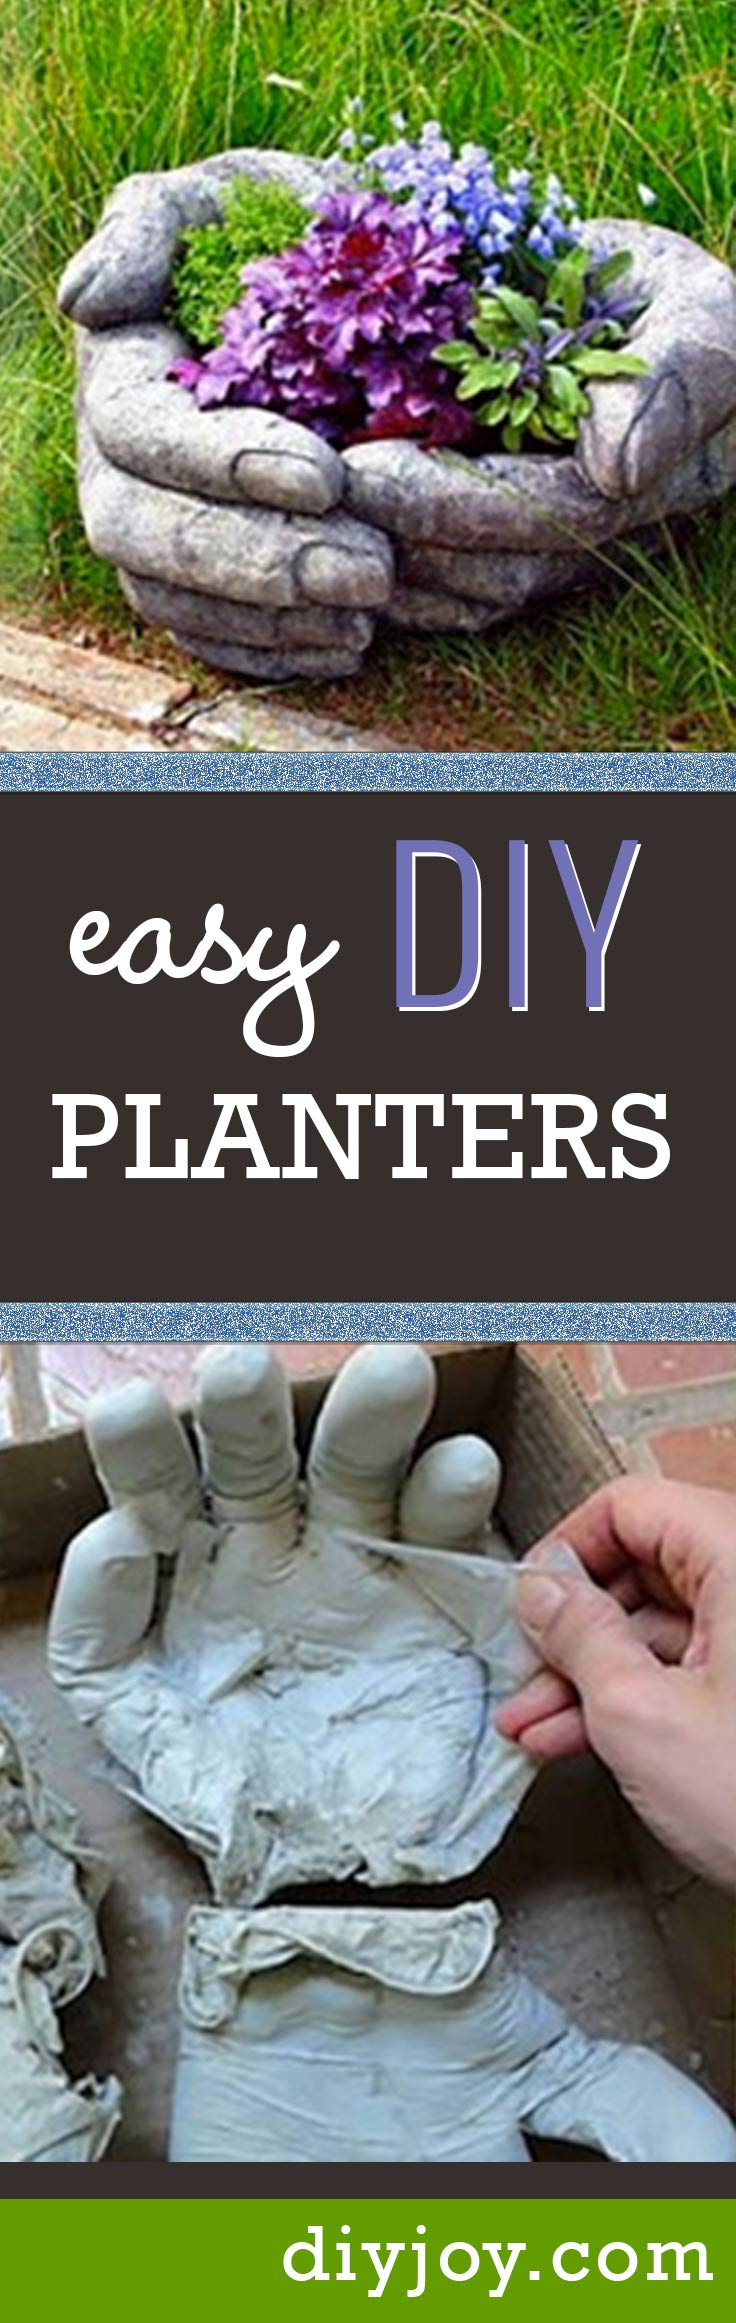 43 DIY concrete crafts - Concrete Pots In Hand Shade Are Super Creative Project- Cheap and creative projects and tutorials for countertops and ideas for floors, patio and porch decor, tables, planters, vases, frames, jewelry holder, home decor and DIY gifts #gifts #diy-